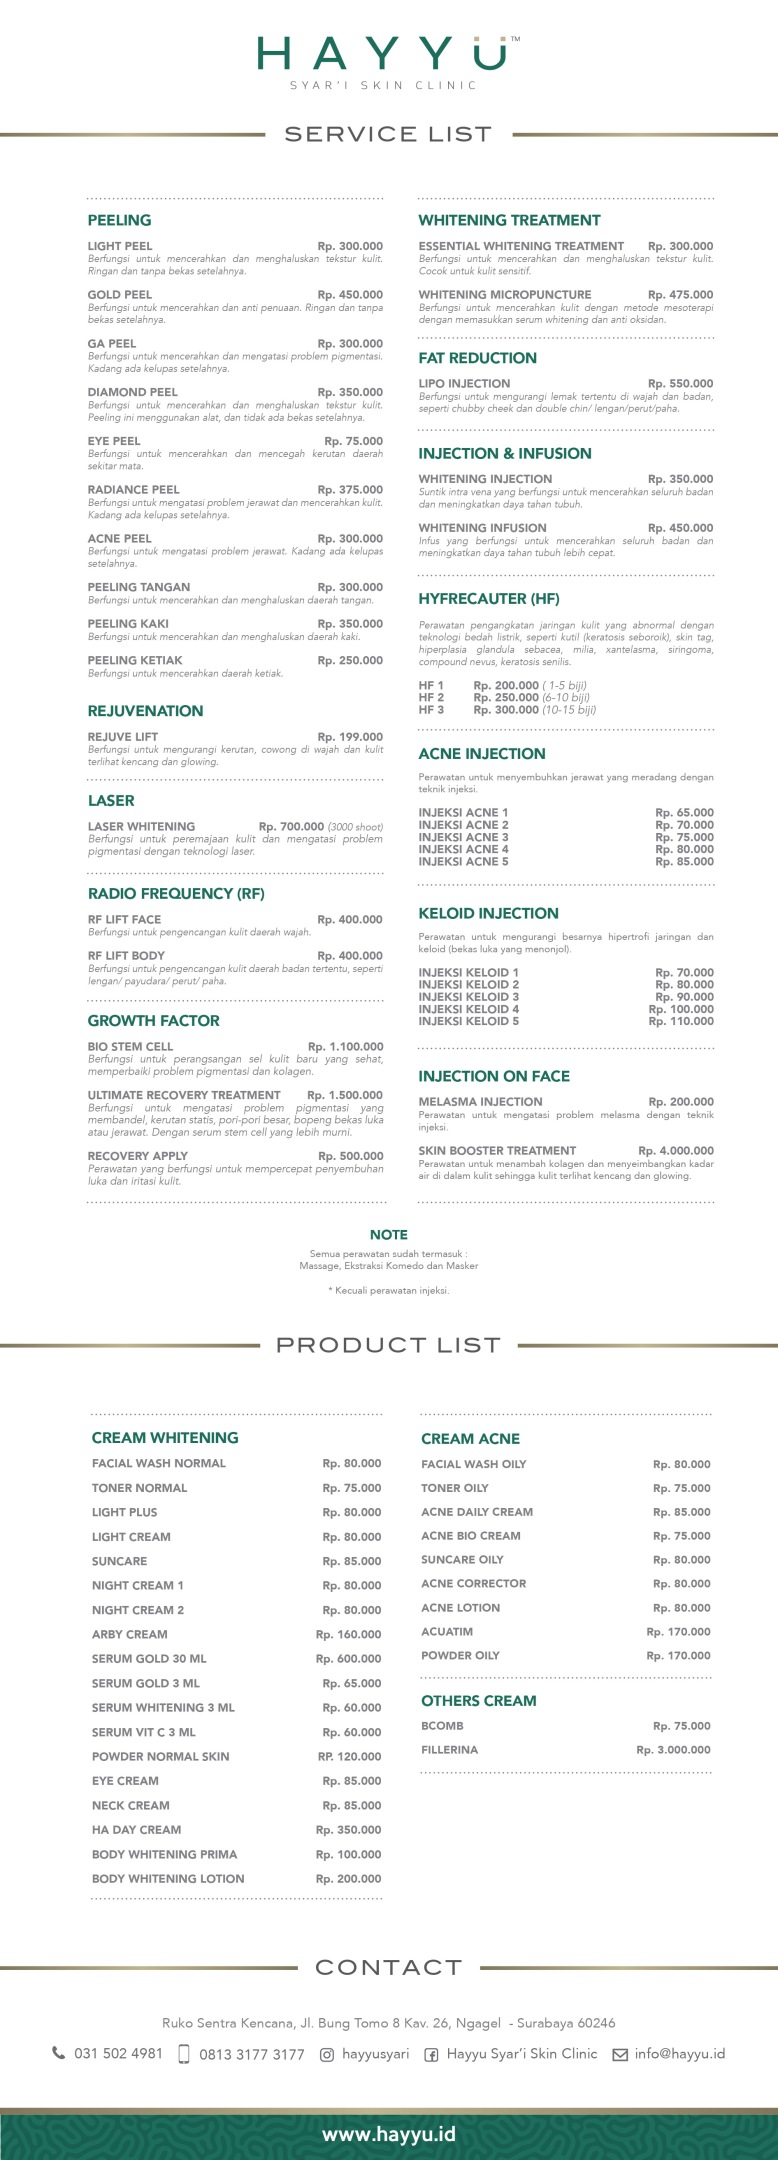 HAYYU Syar'i Skin Clinic- PRICE LIST - 27 April 2017